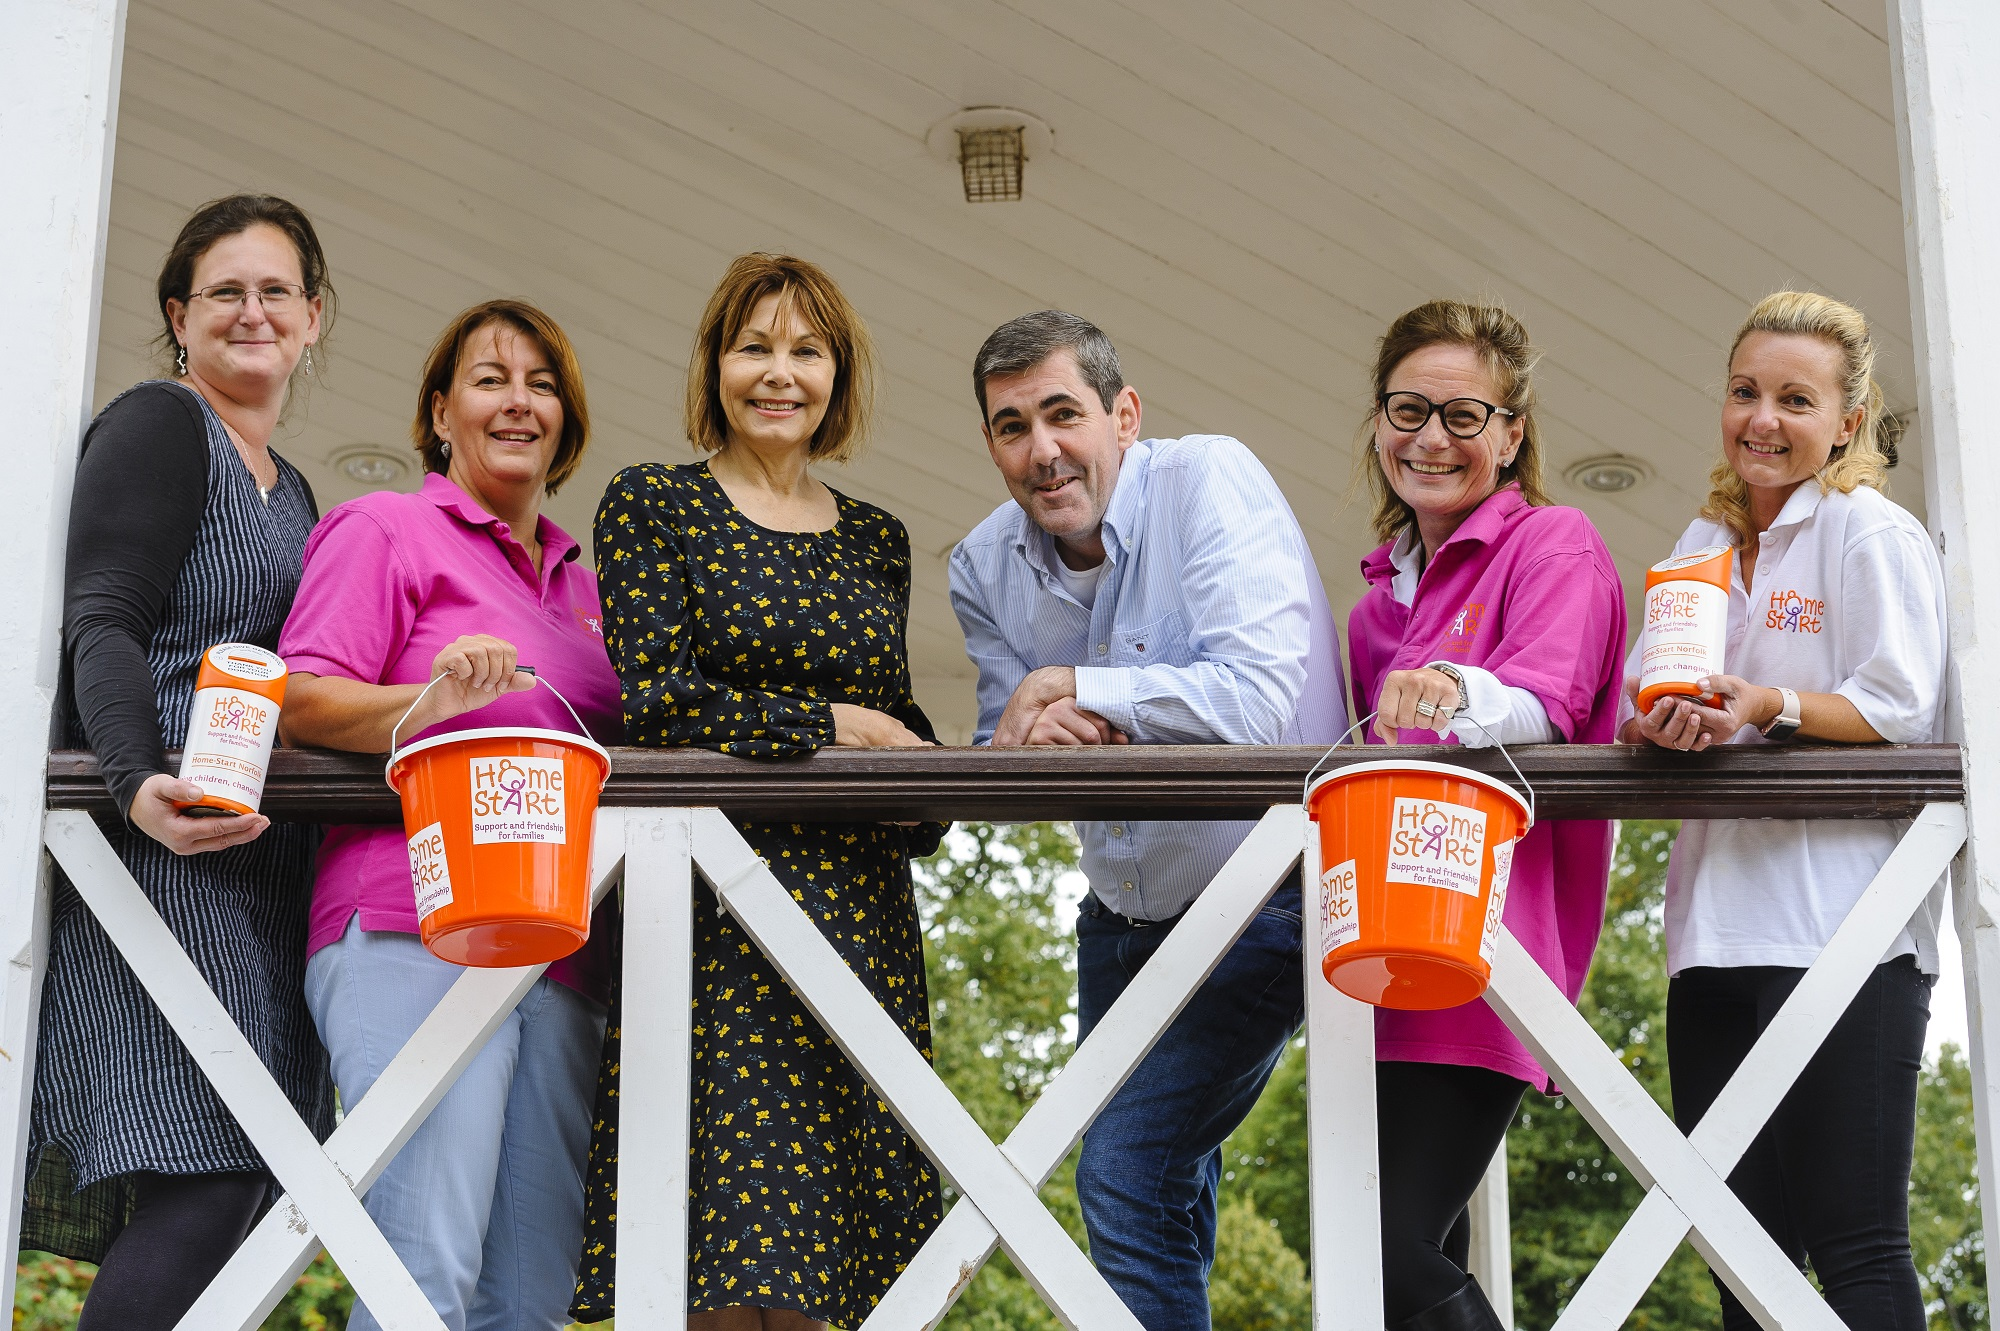 Left to right: Dr Sarah Taigal - a lady who has received Home-Start support in the past, Chrissie Jackson - patron of the charity, Ray McCune and Fiona Hall, Tanya - volunteer, Helen Brown - fundraising manager.